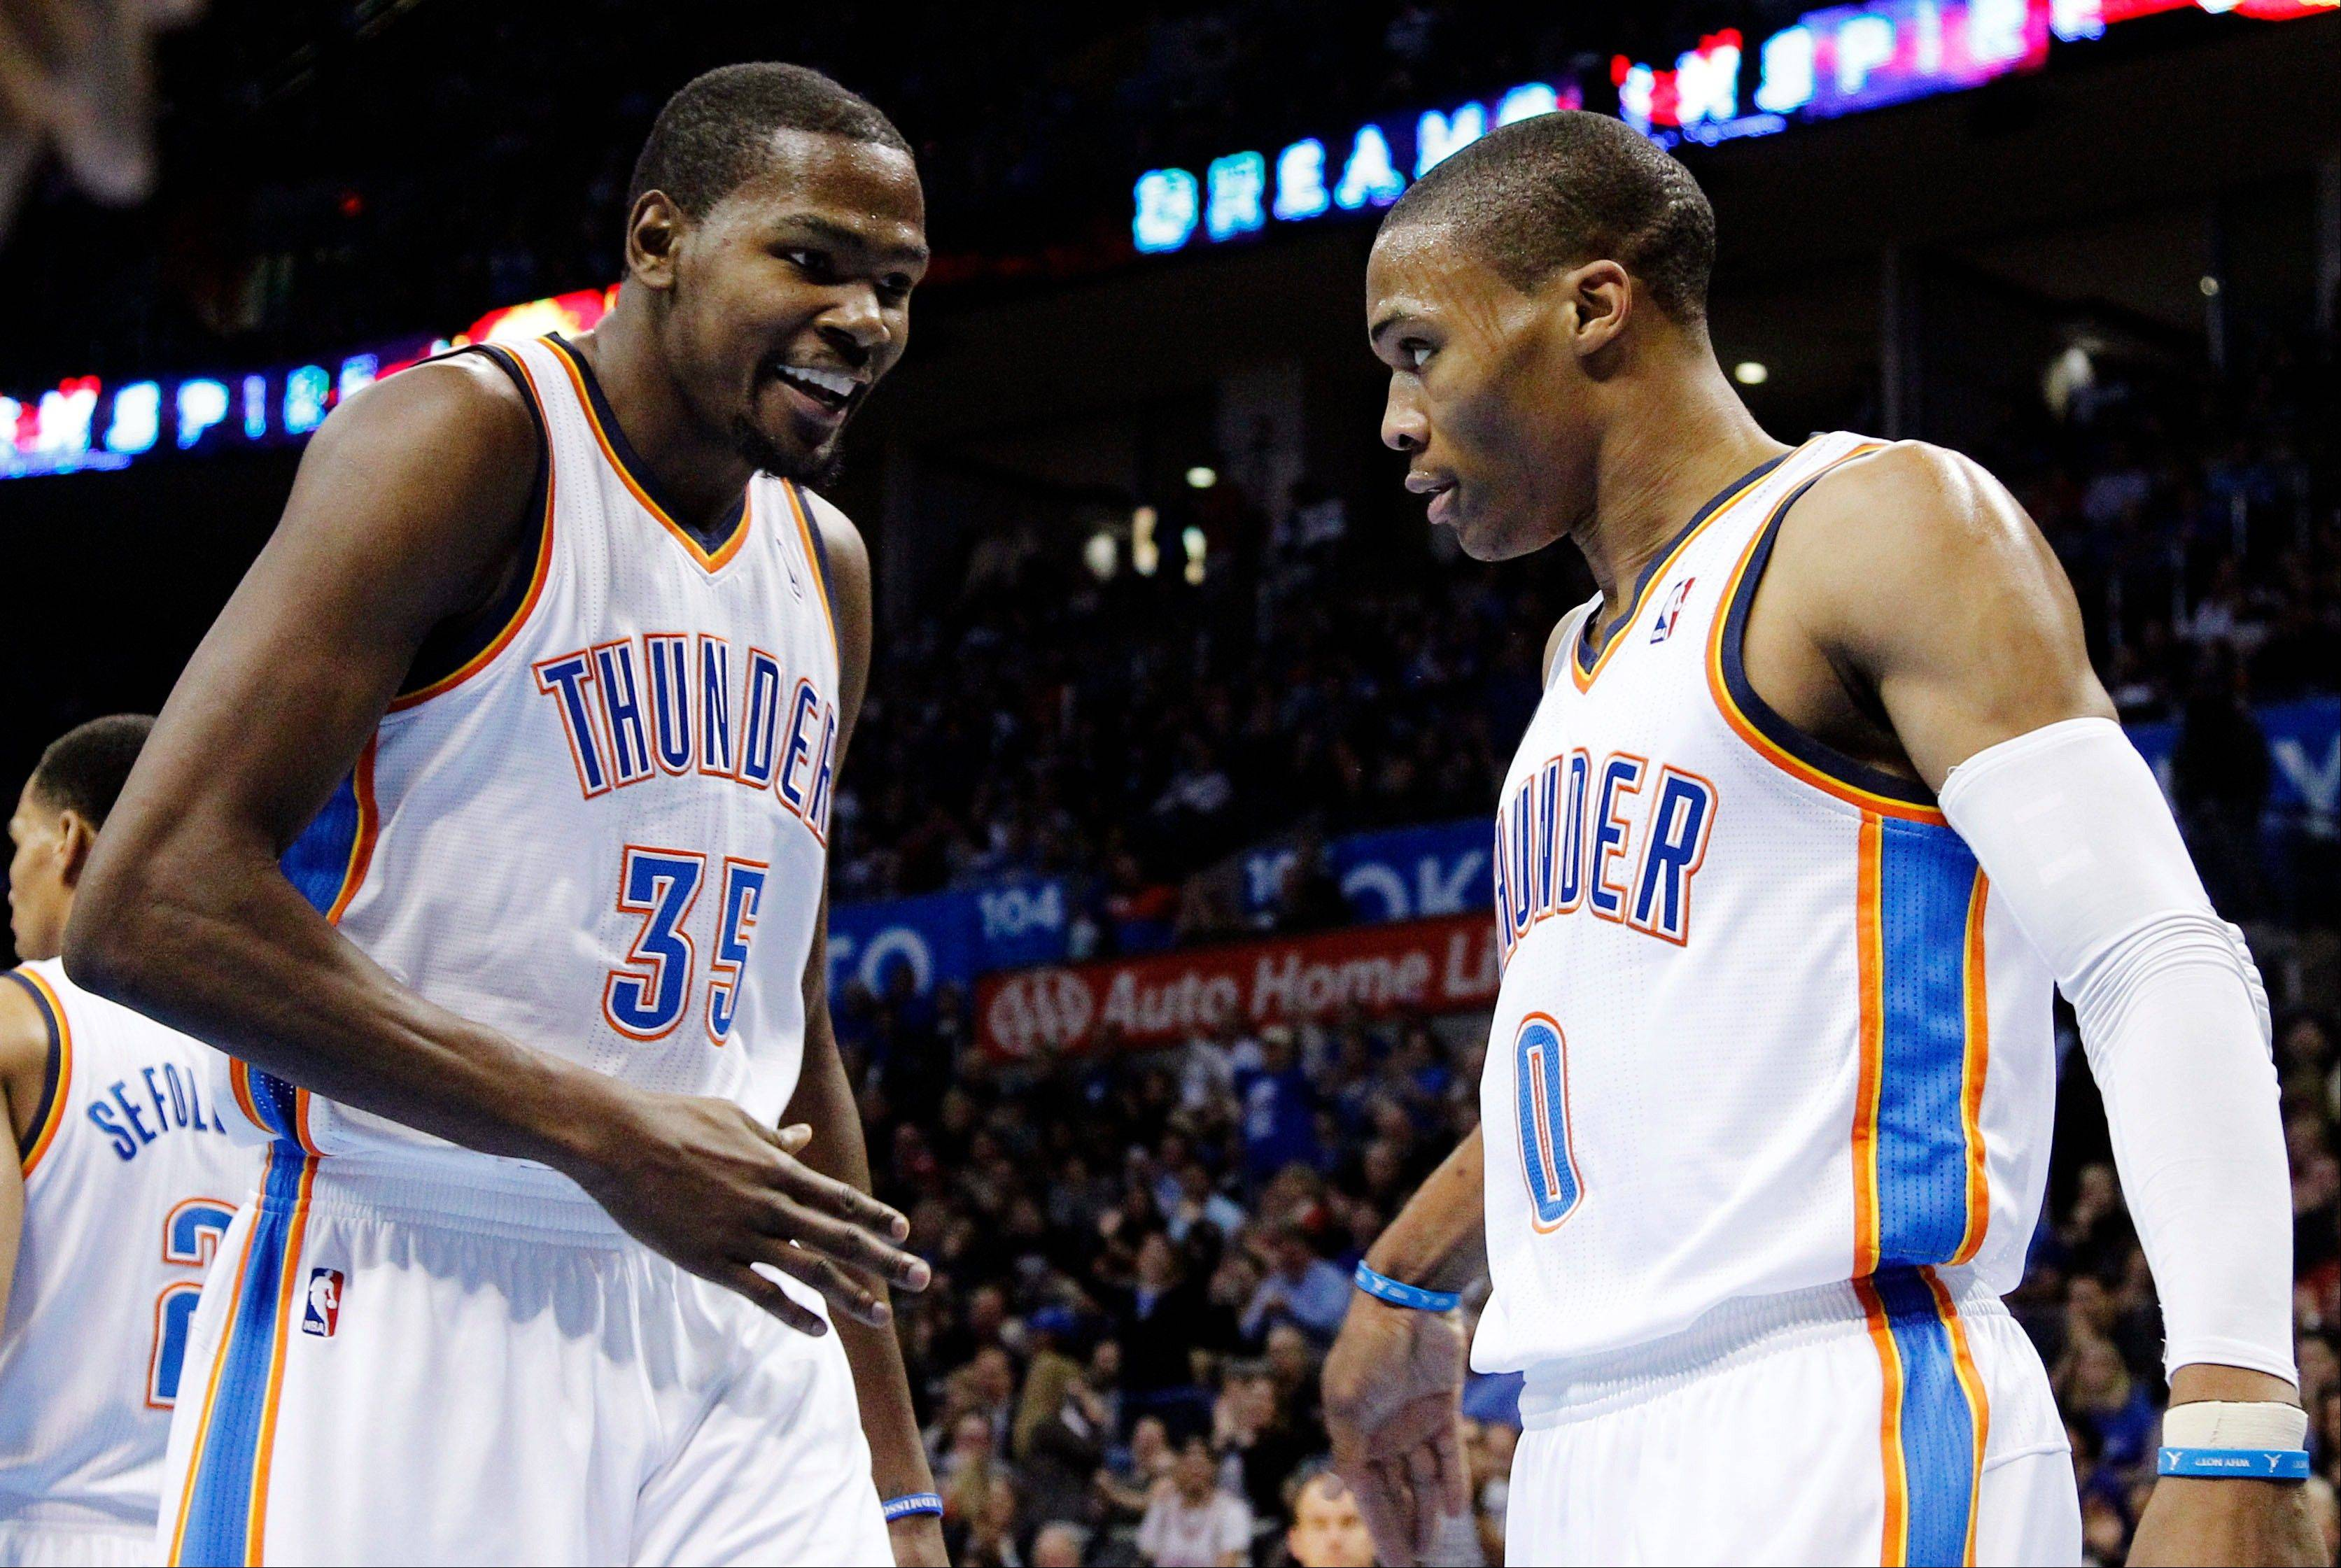 Oklahoma City Thunder forward Kevin Durant (35) and guard Russell Westbrook (0) react Wednesday after Westbrook blocked a shot by Houston Rockets guard James Harden during the first quarter in Oklahoma City.